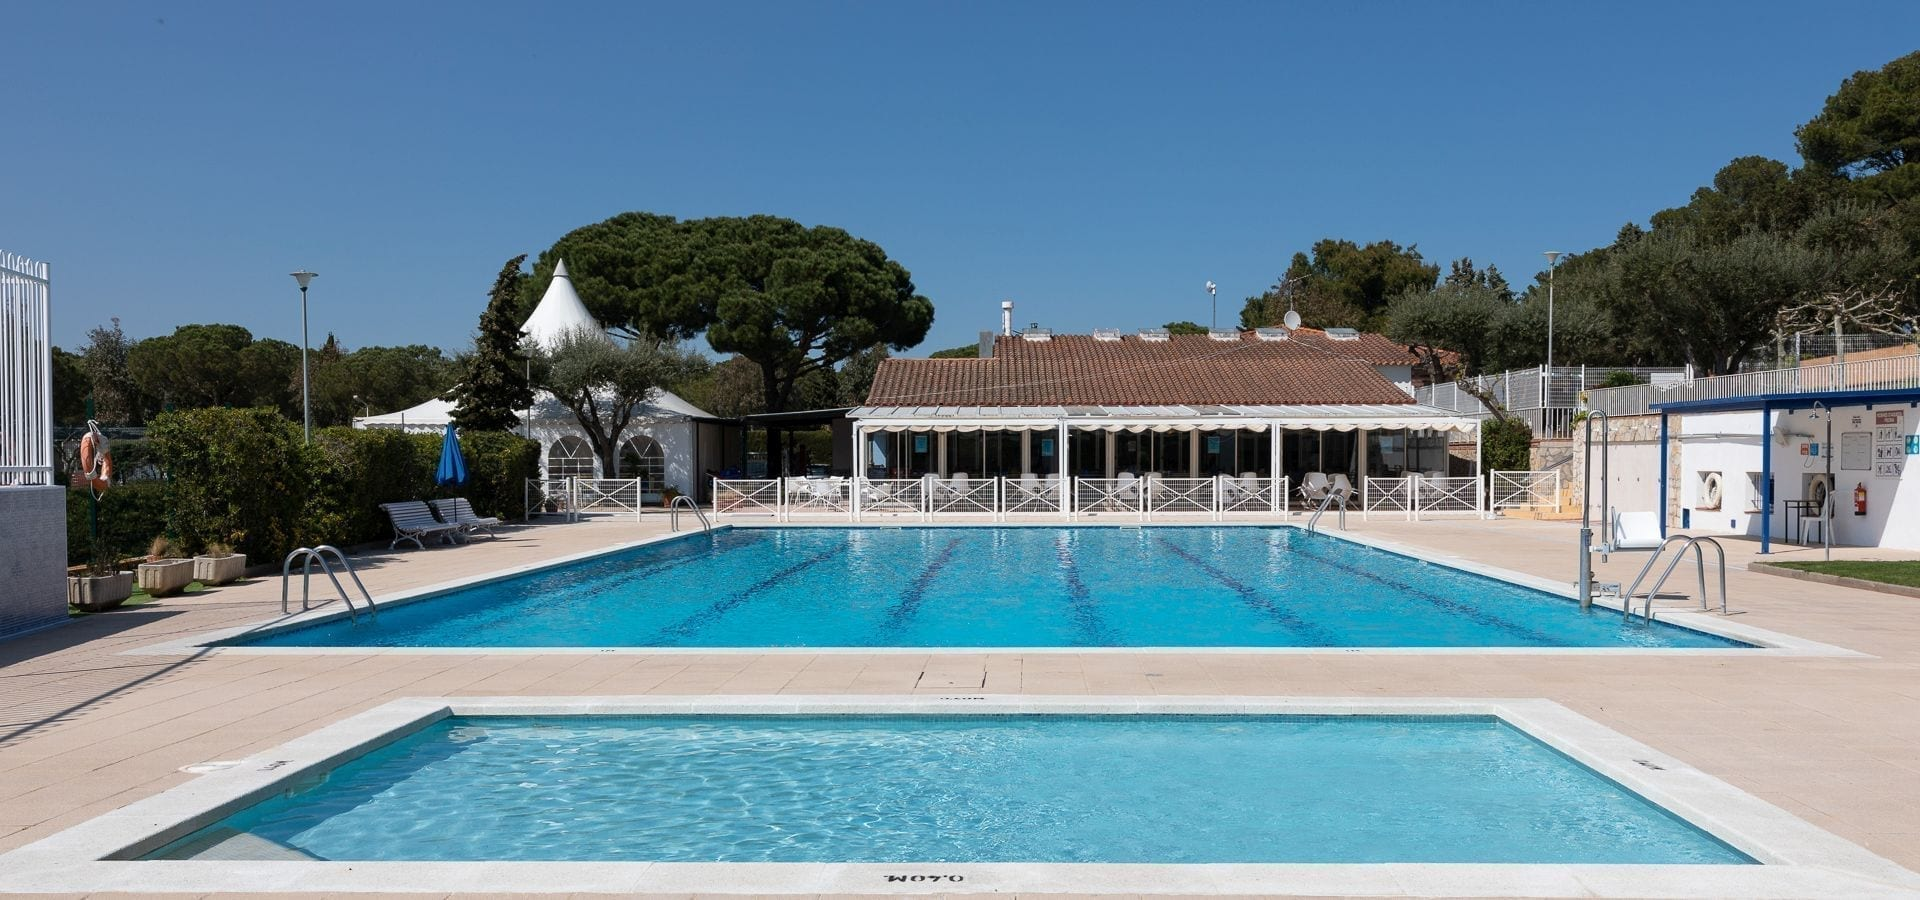 Family camping with swimming pool for all ages - Palafrugell - Kim's Camping Llafranc